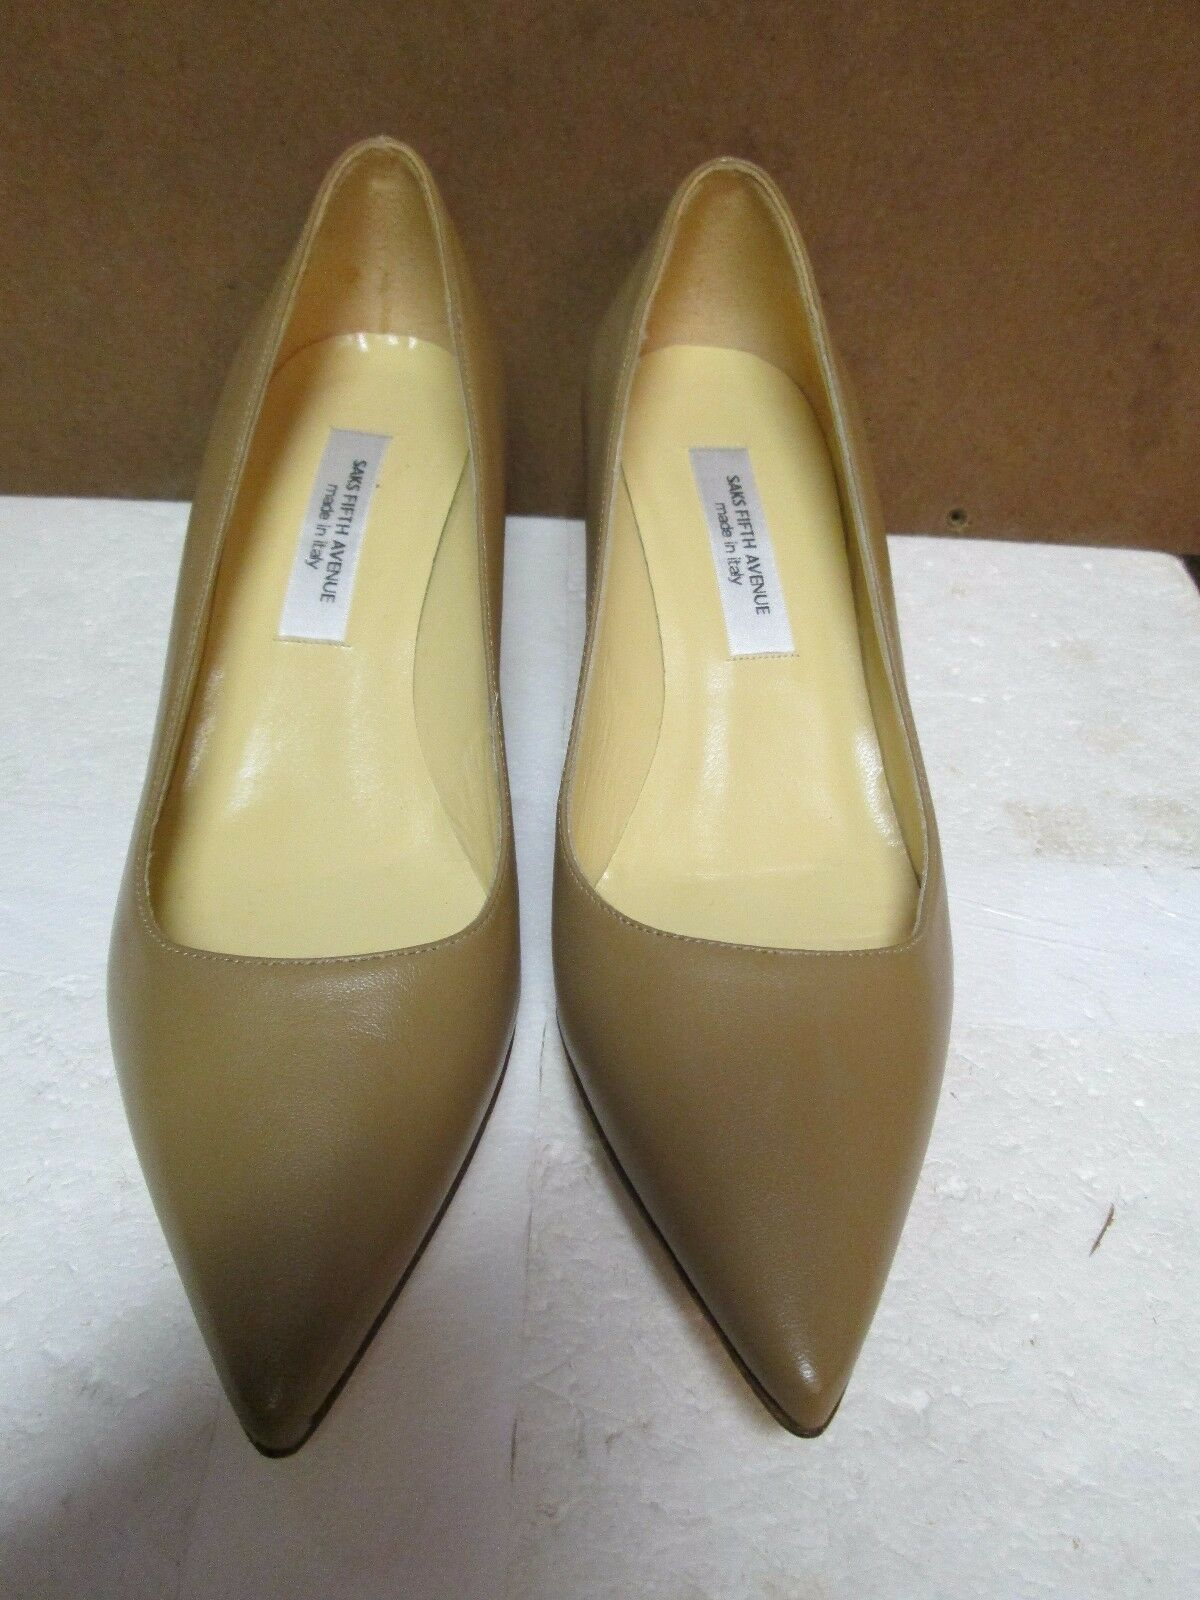 Saks Fifth Avenue Beige Leather Kitten Heel Pumps 7B